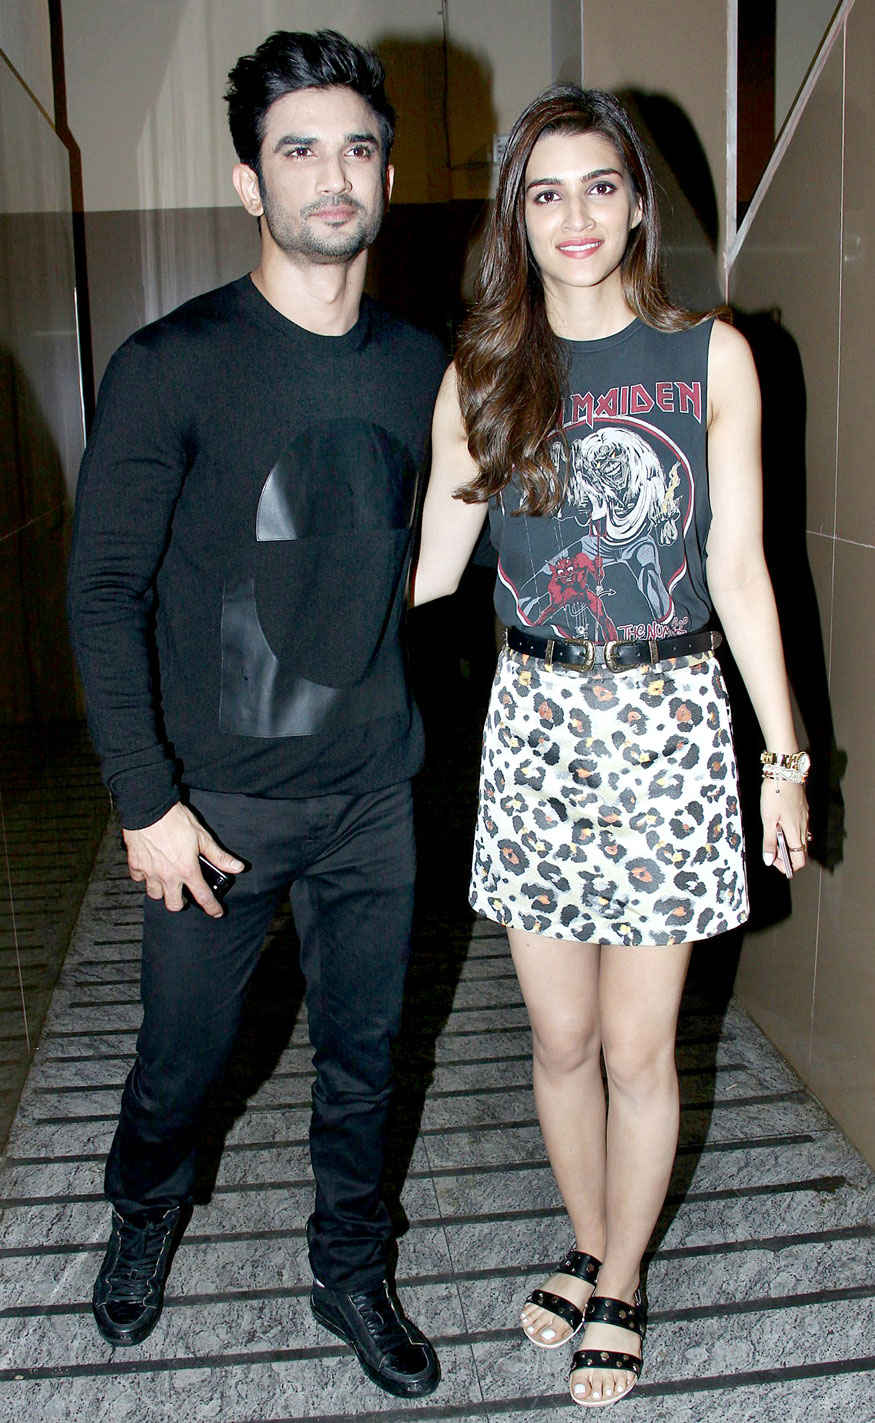 Sushant Singh Rajput and Kriti Sanon Screening of Raabta at PVR